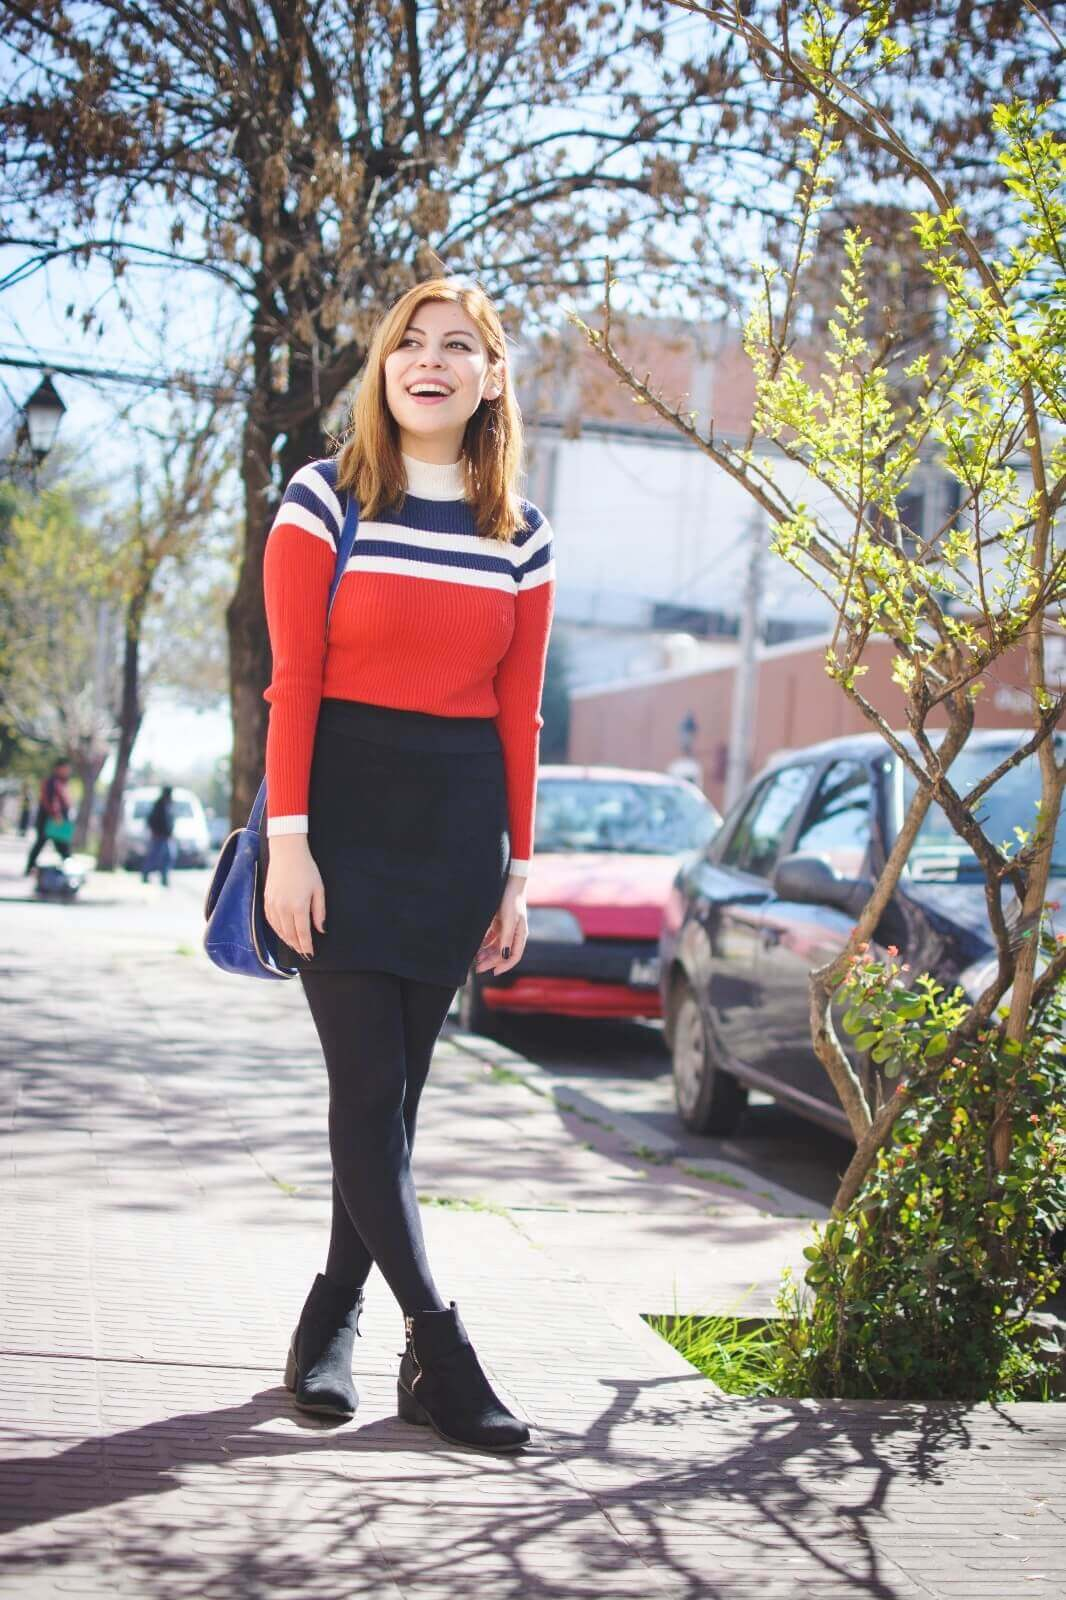 red-blue-and-white-striped-turtleneck-black-mini-skirt-tights-ankle-boots-deborah-ferrero-style-by-deb-fall-2016-trends07